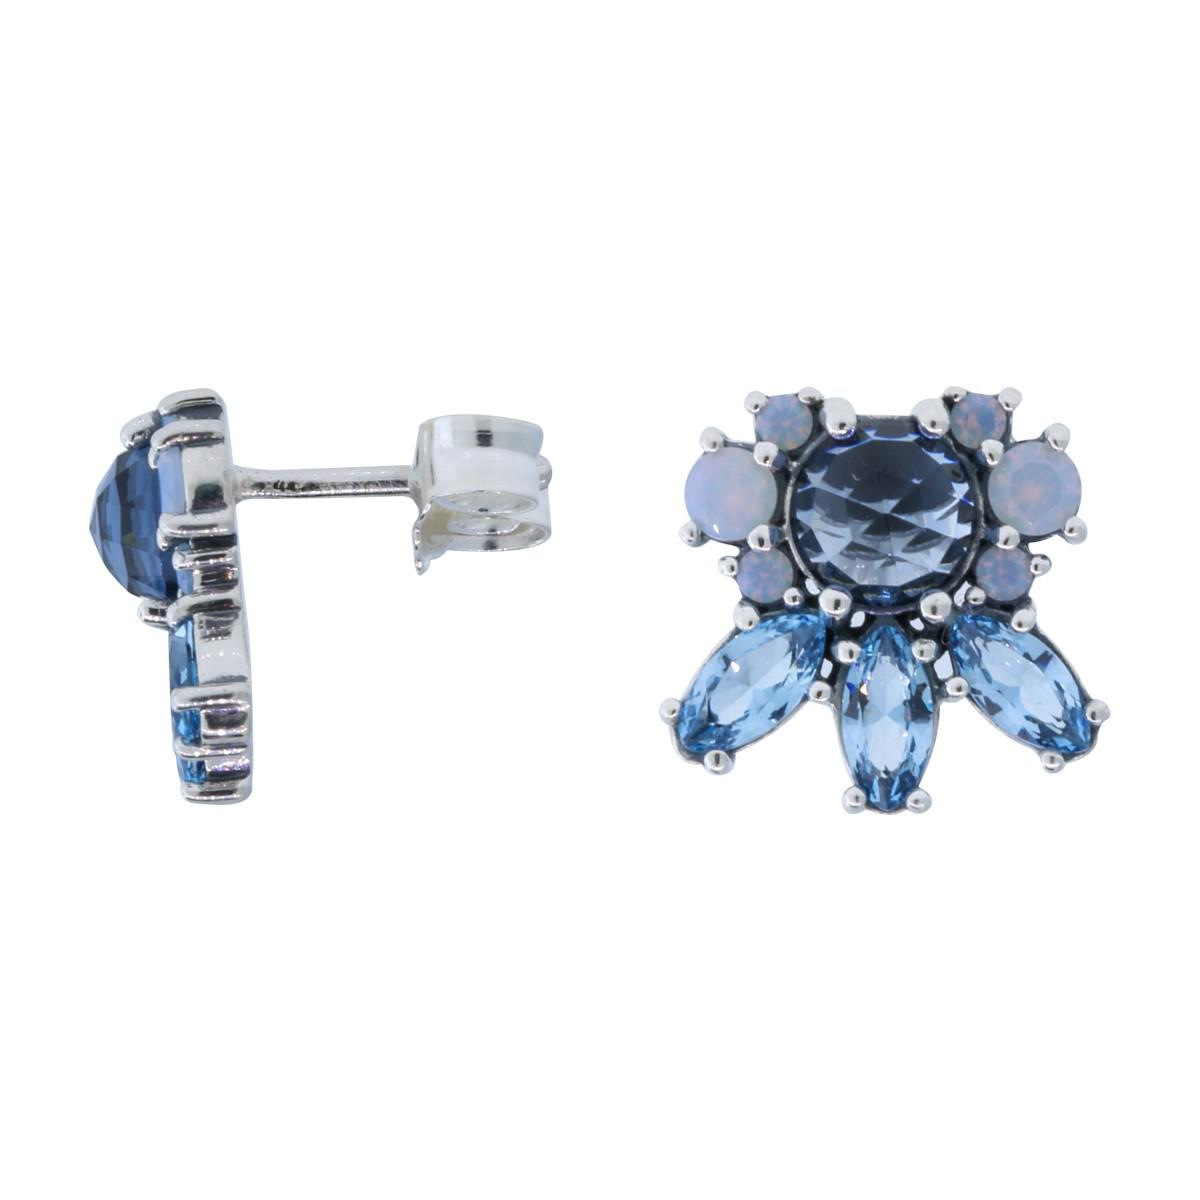 9dcee0242 PANDORA. Women's Authentic 290731nmbmx Patterns Of Frost Stud Earrings